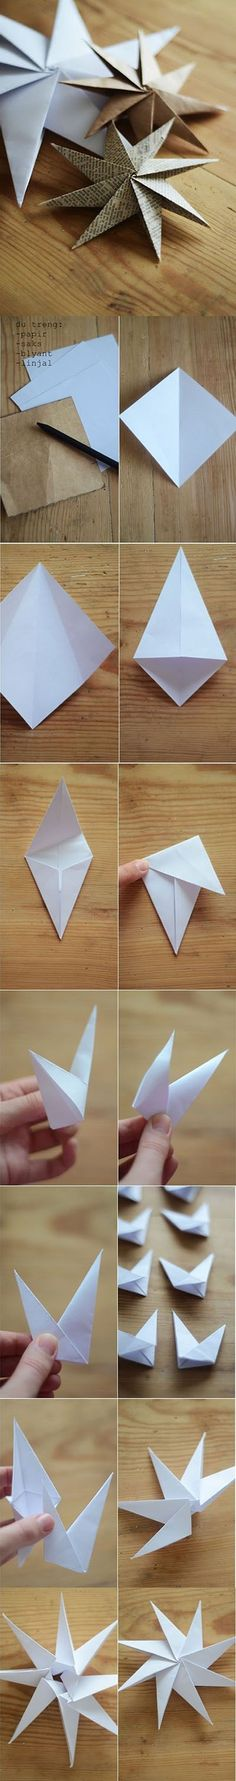 Easy And Beautiful Paper Craft | Best DIY Ideas